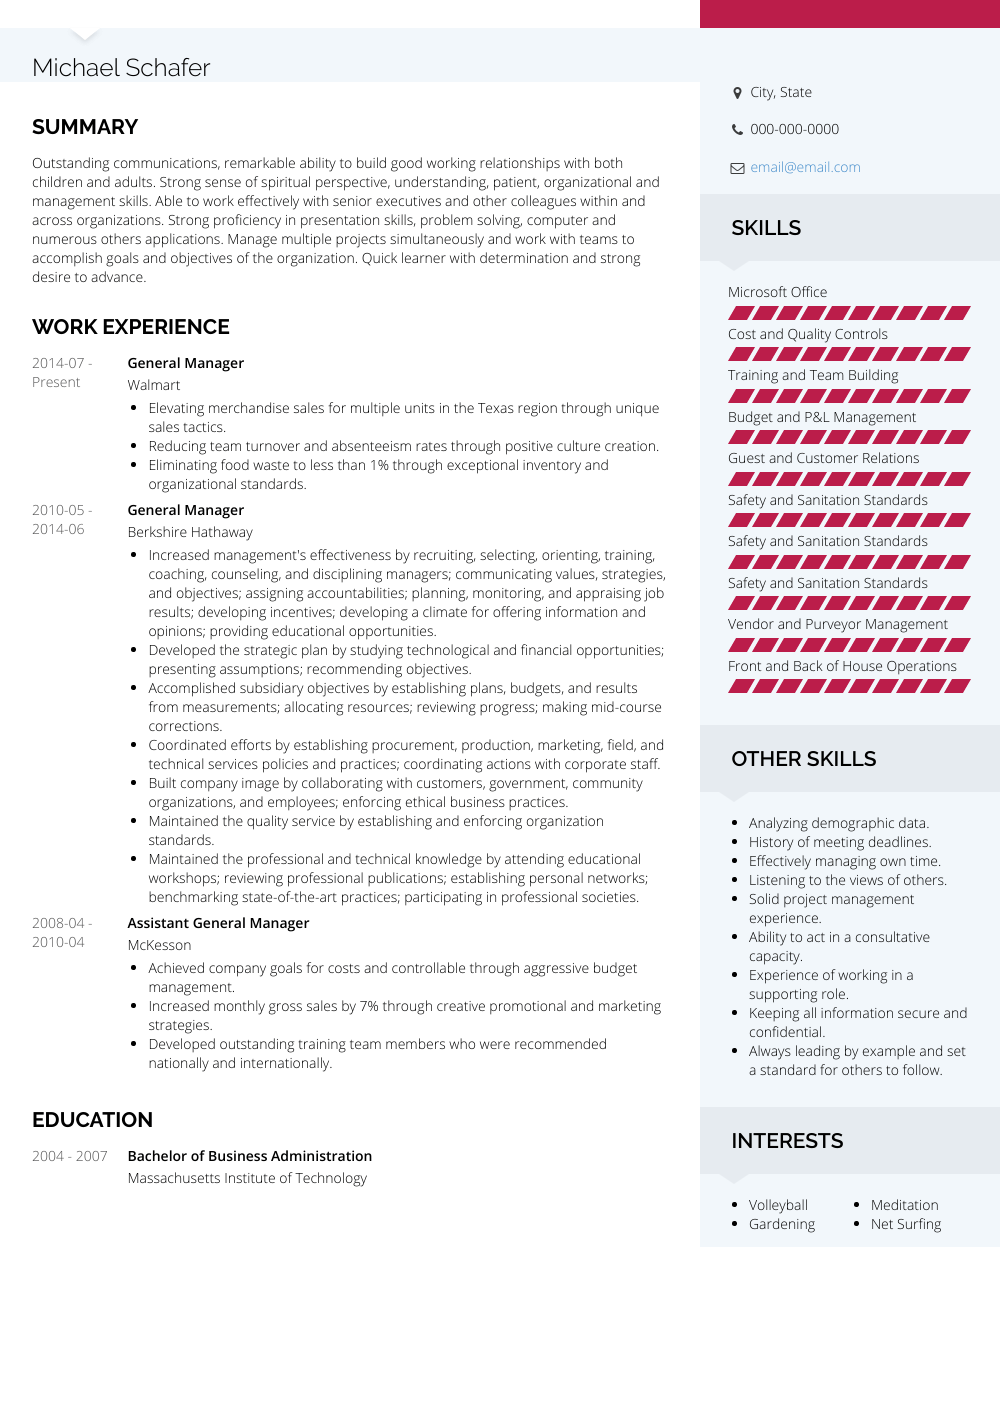 General Manager - Resume Samples and Templates | VisualCV